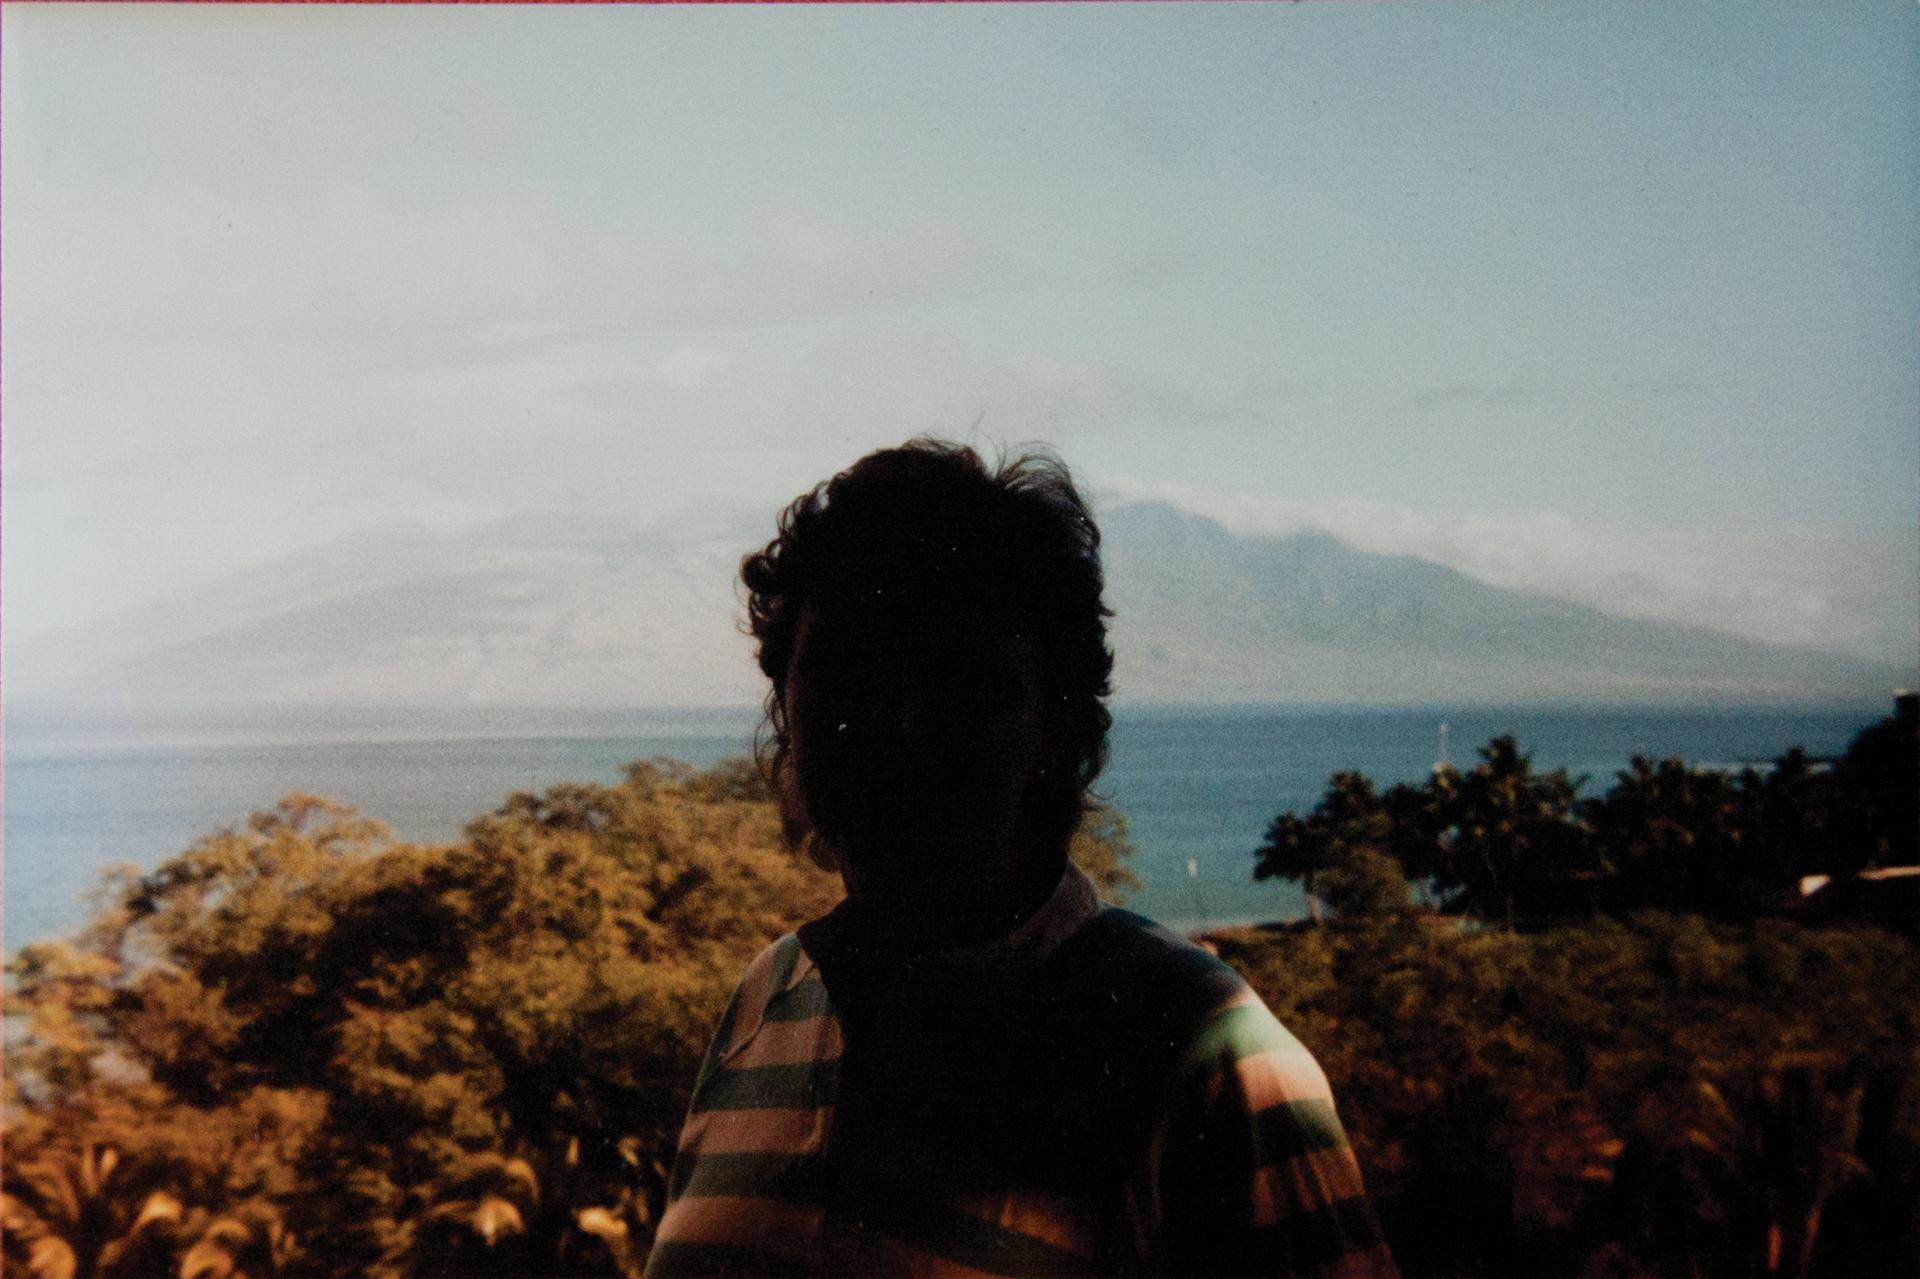 A color photograph in which a landscape can be seen behind a severely underexposed and backlit person.